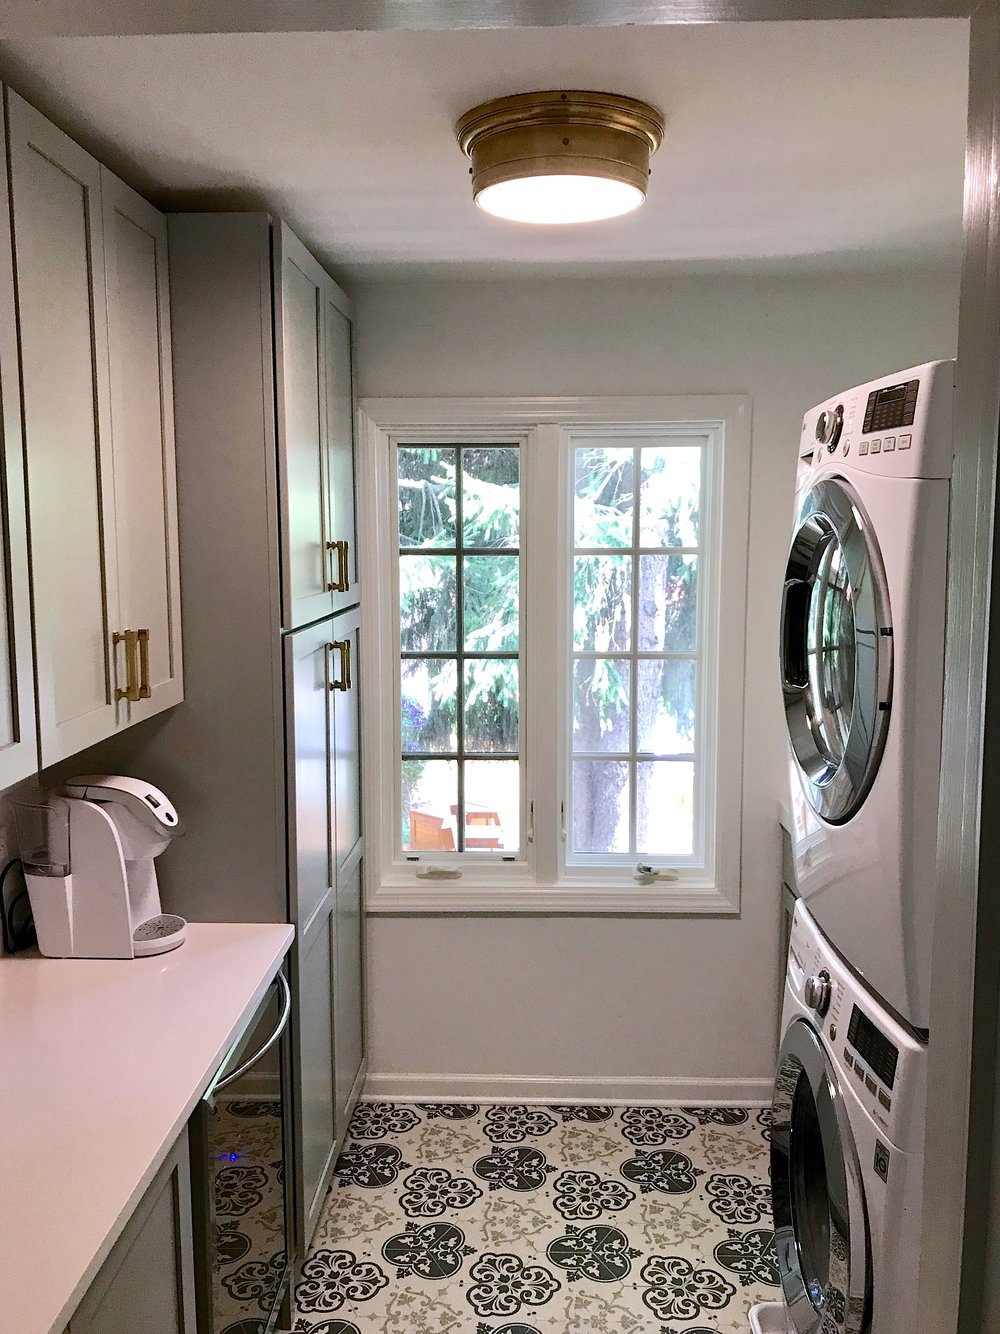 Goodbye to a single-purpose storage room, and hello to a multi-function laundry room. Cabinetry for storage on the left, with stackable full-size laundry machines and sink on the right.